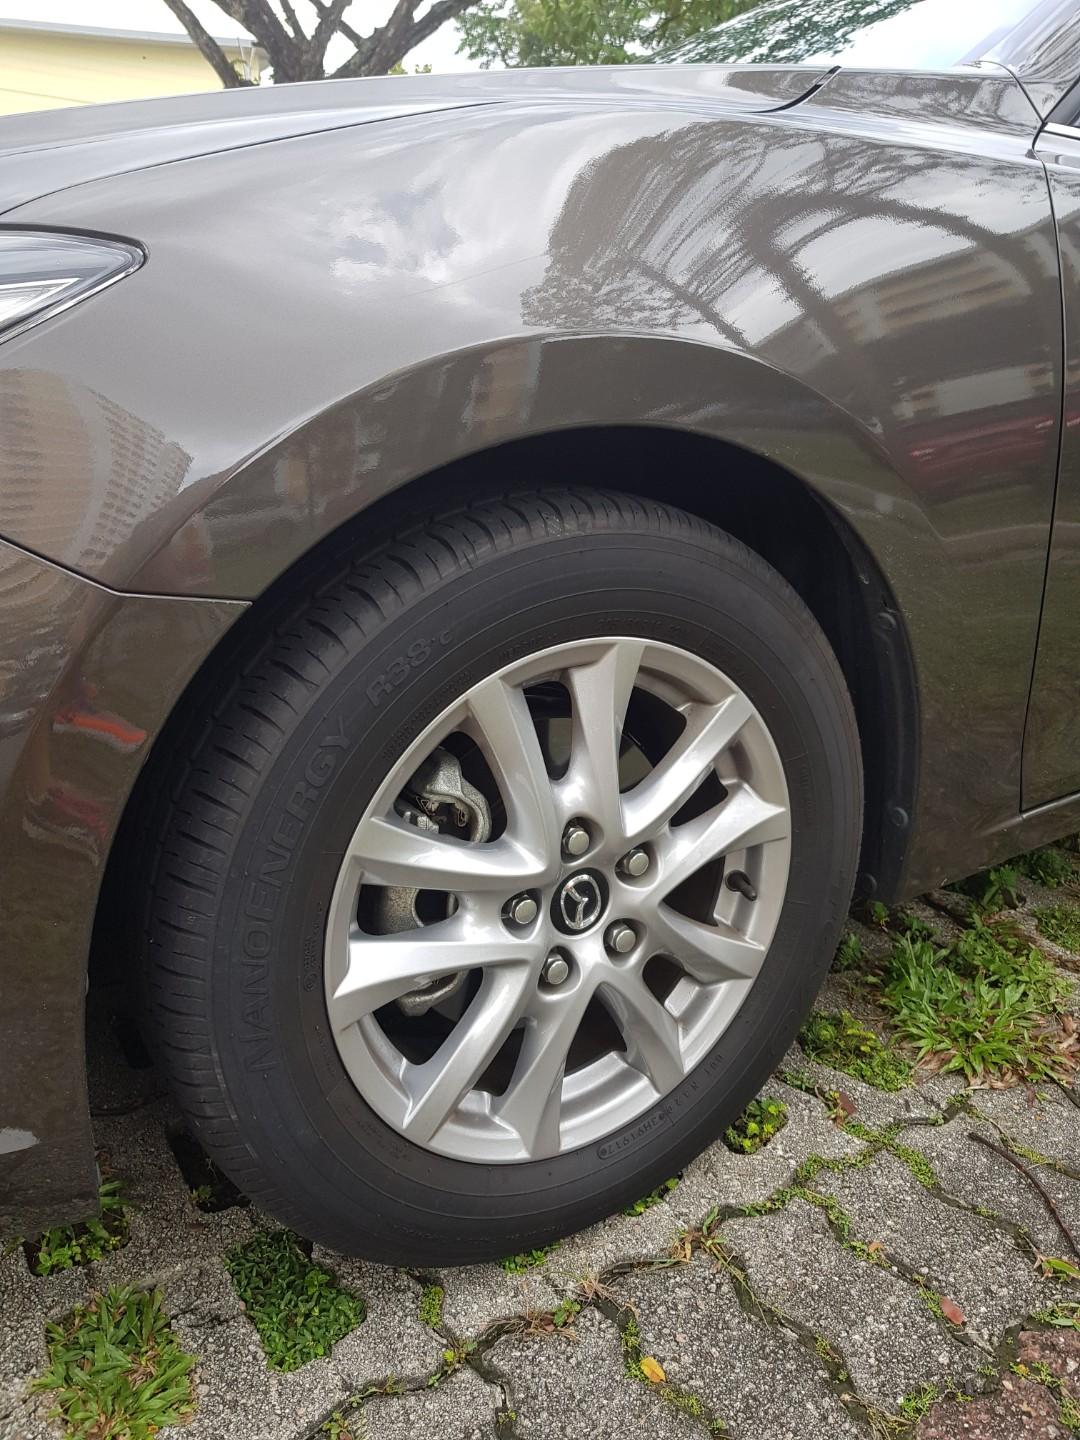 Mazda 3 Rims Set Car Rims Only Car Accessories Tyres Rims On